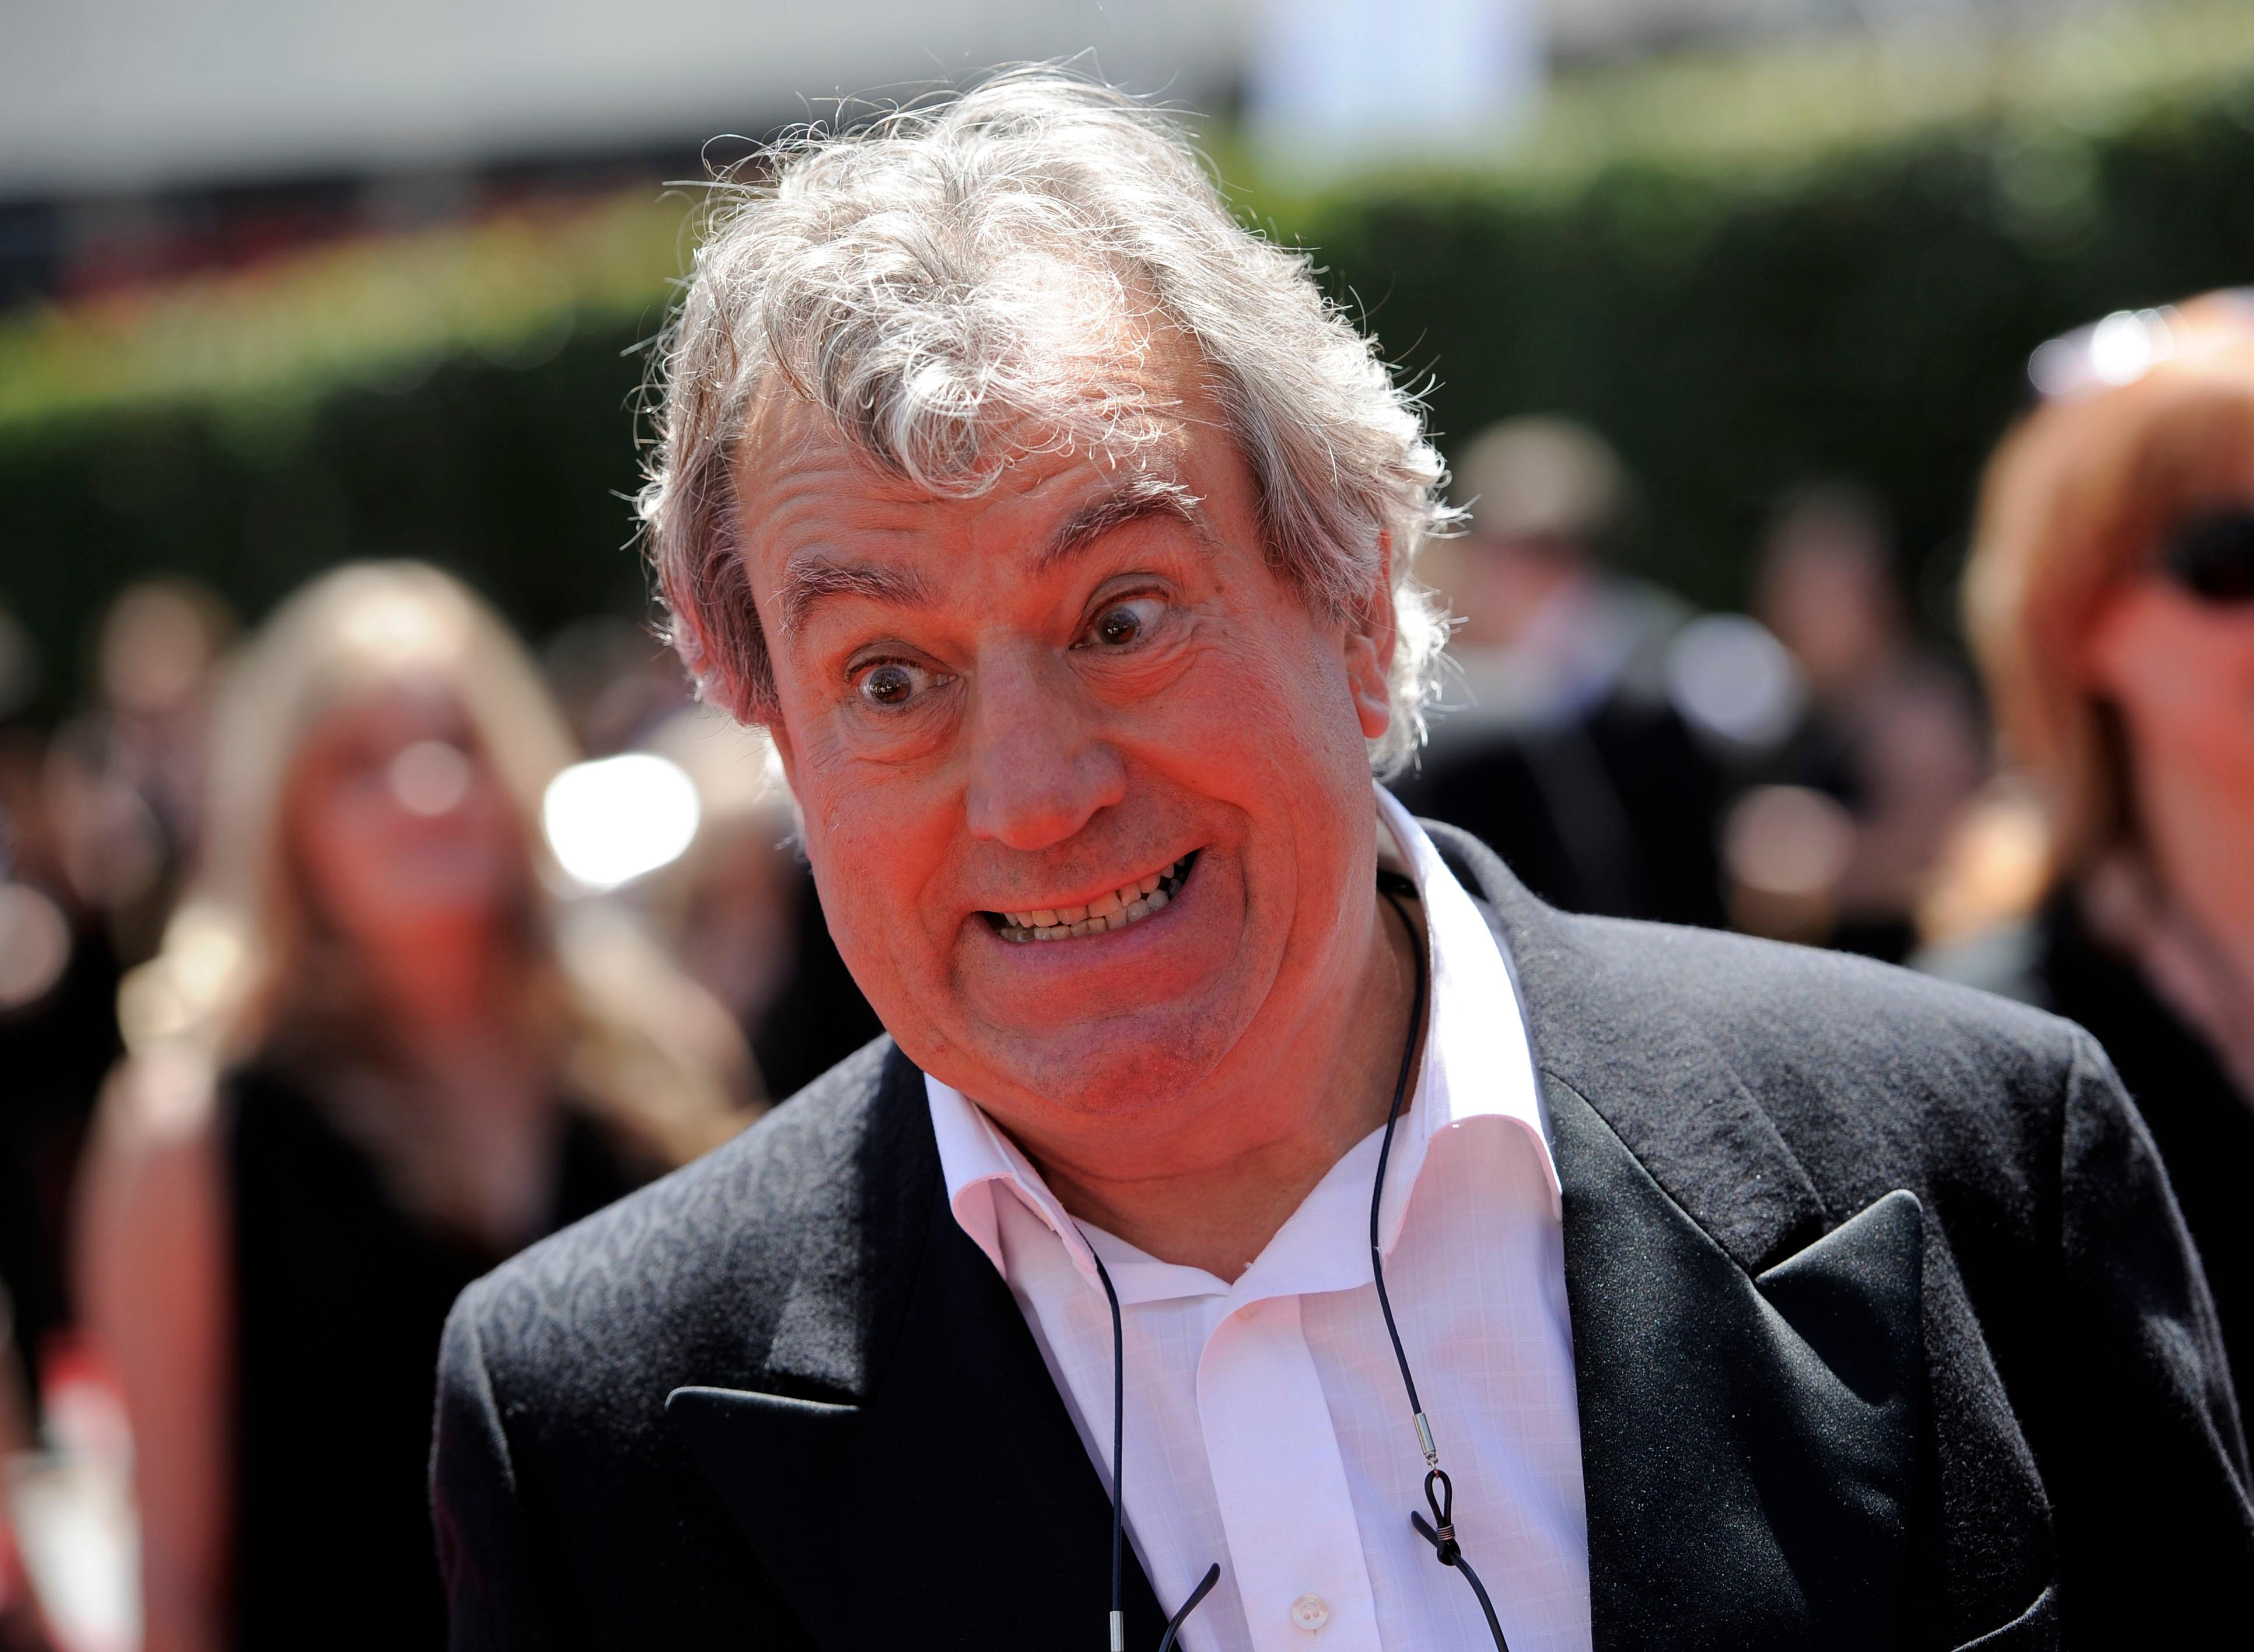 FILE - In this Saturday, Aug. 21, 2010 file photo, Terry Jones arrives at the Creative Arts Emmy Awards in Los Angeles. (AP Photo/Chris Pizzello, file)